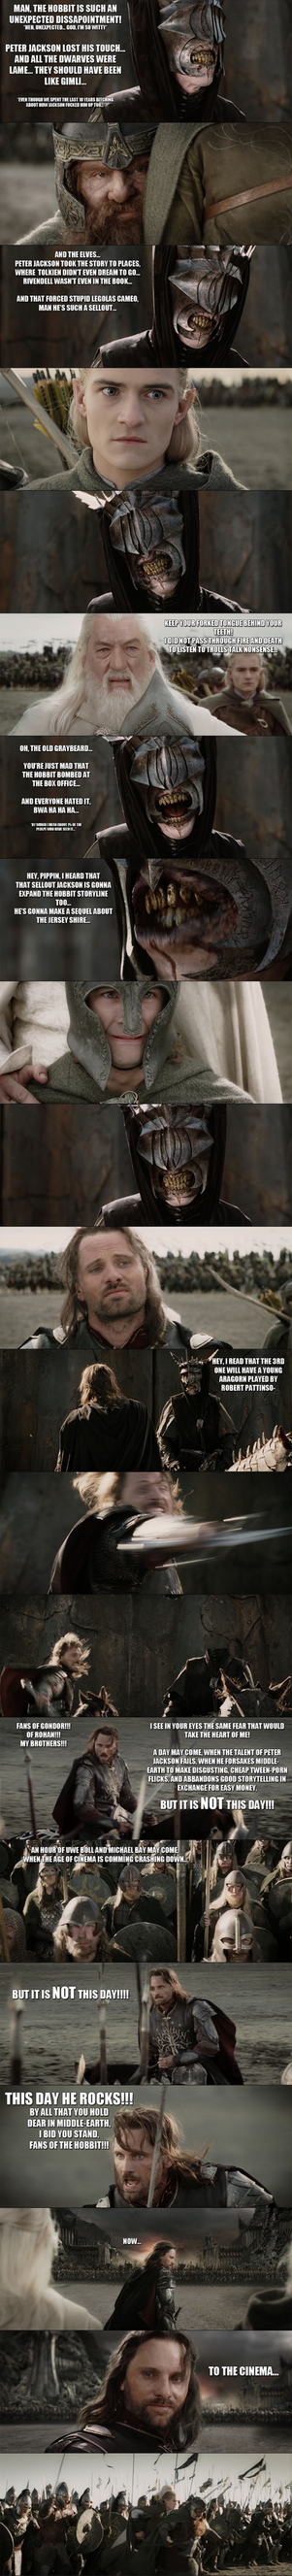 The Hobbit - Aragorn vs the Troll of Sauron... by yourparodies